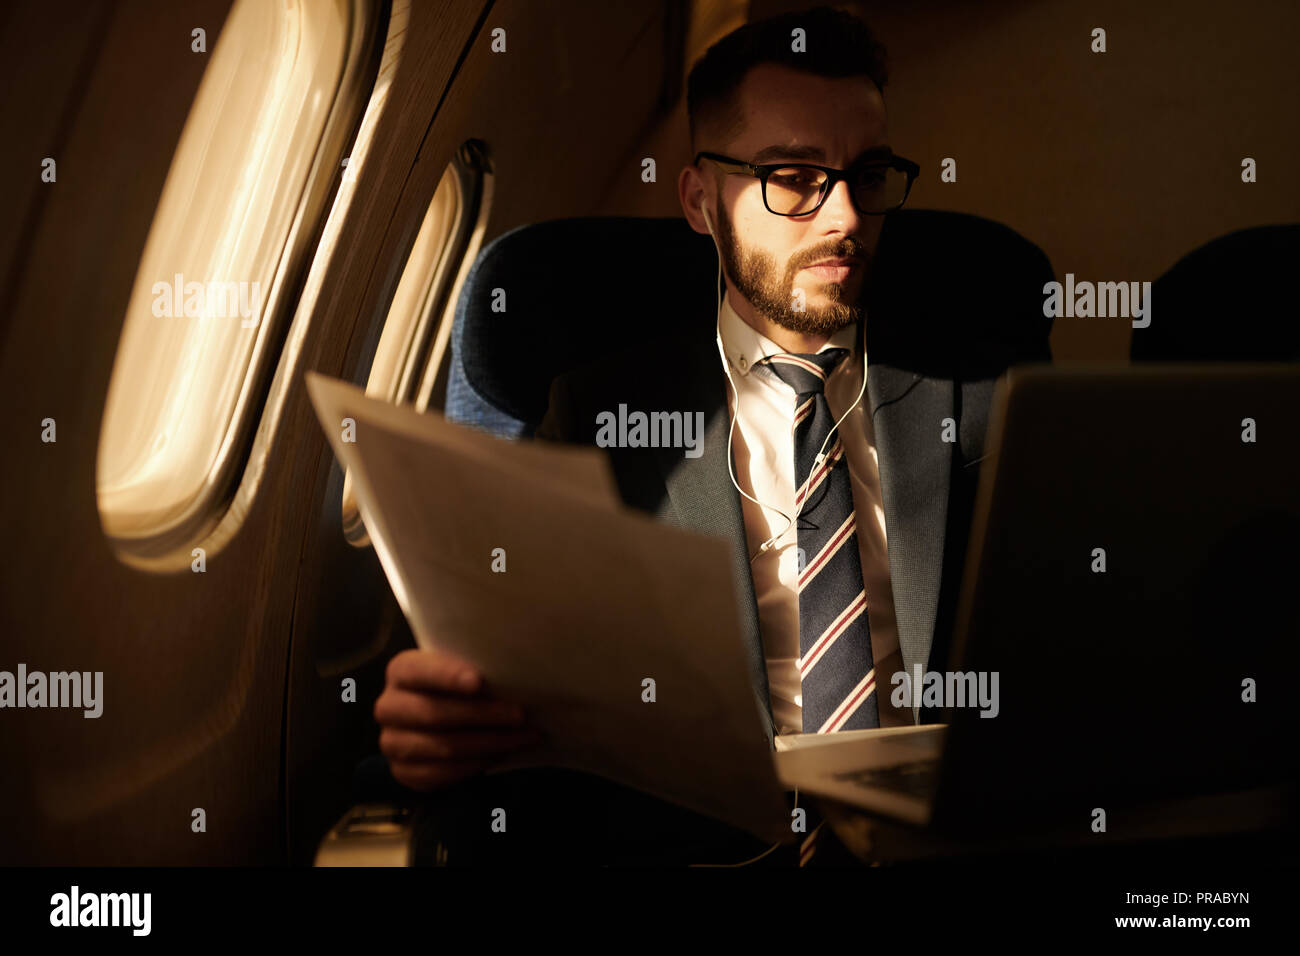 Businessman in Private Jet - Stock Image